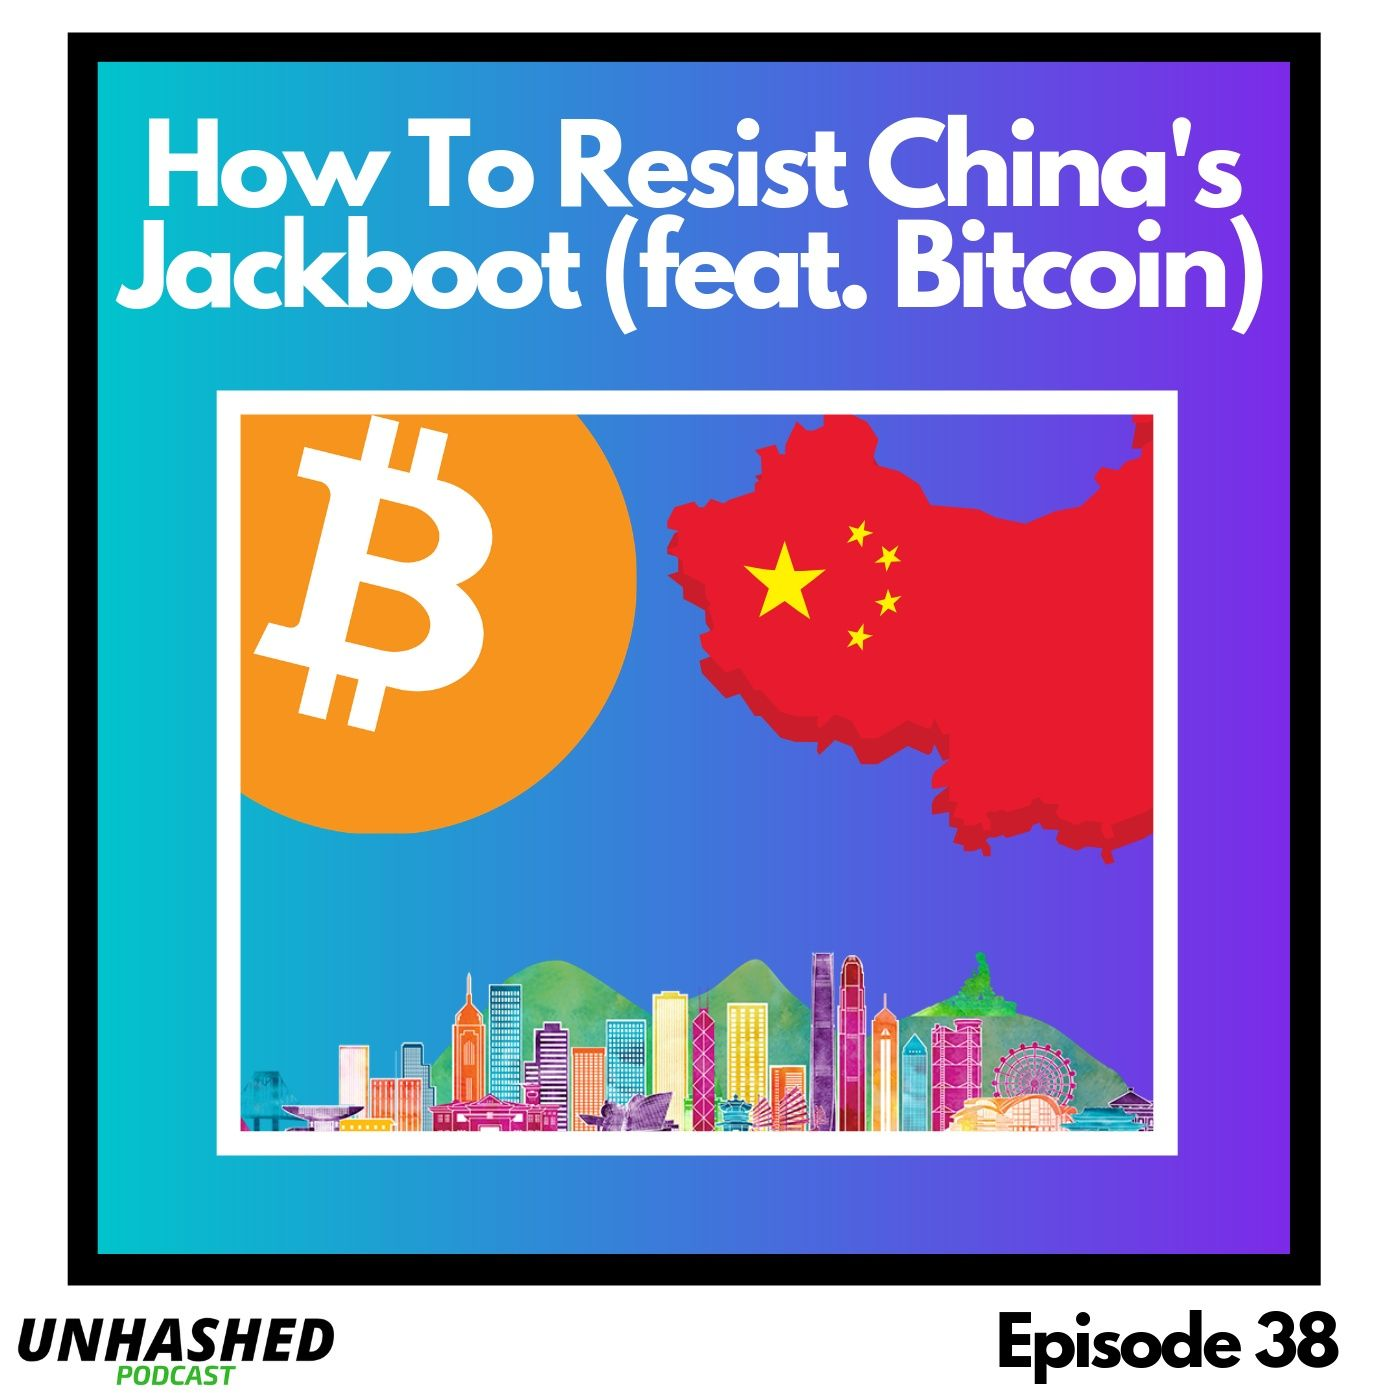 How to Resist China's Jackboot (feat. Bitcoin)